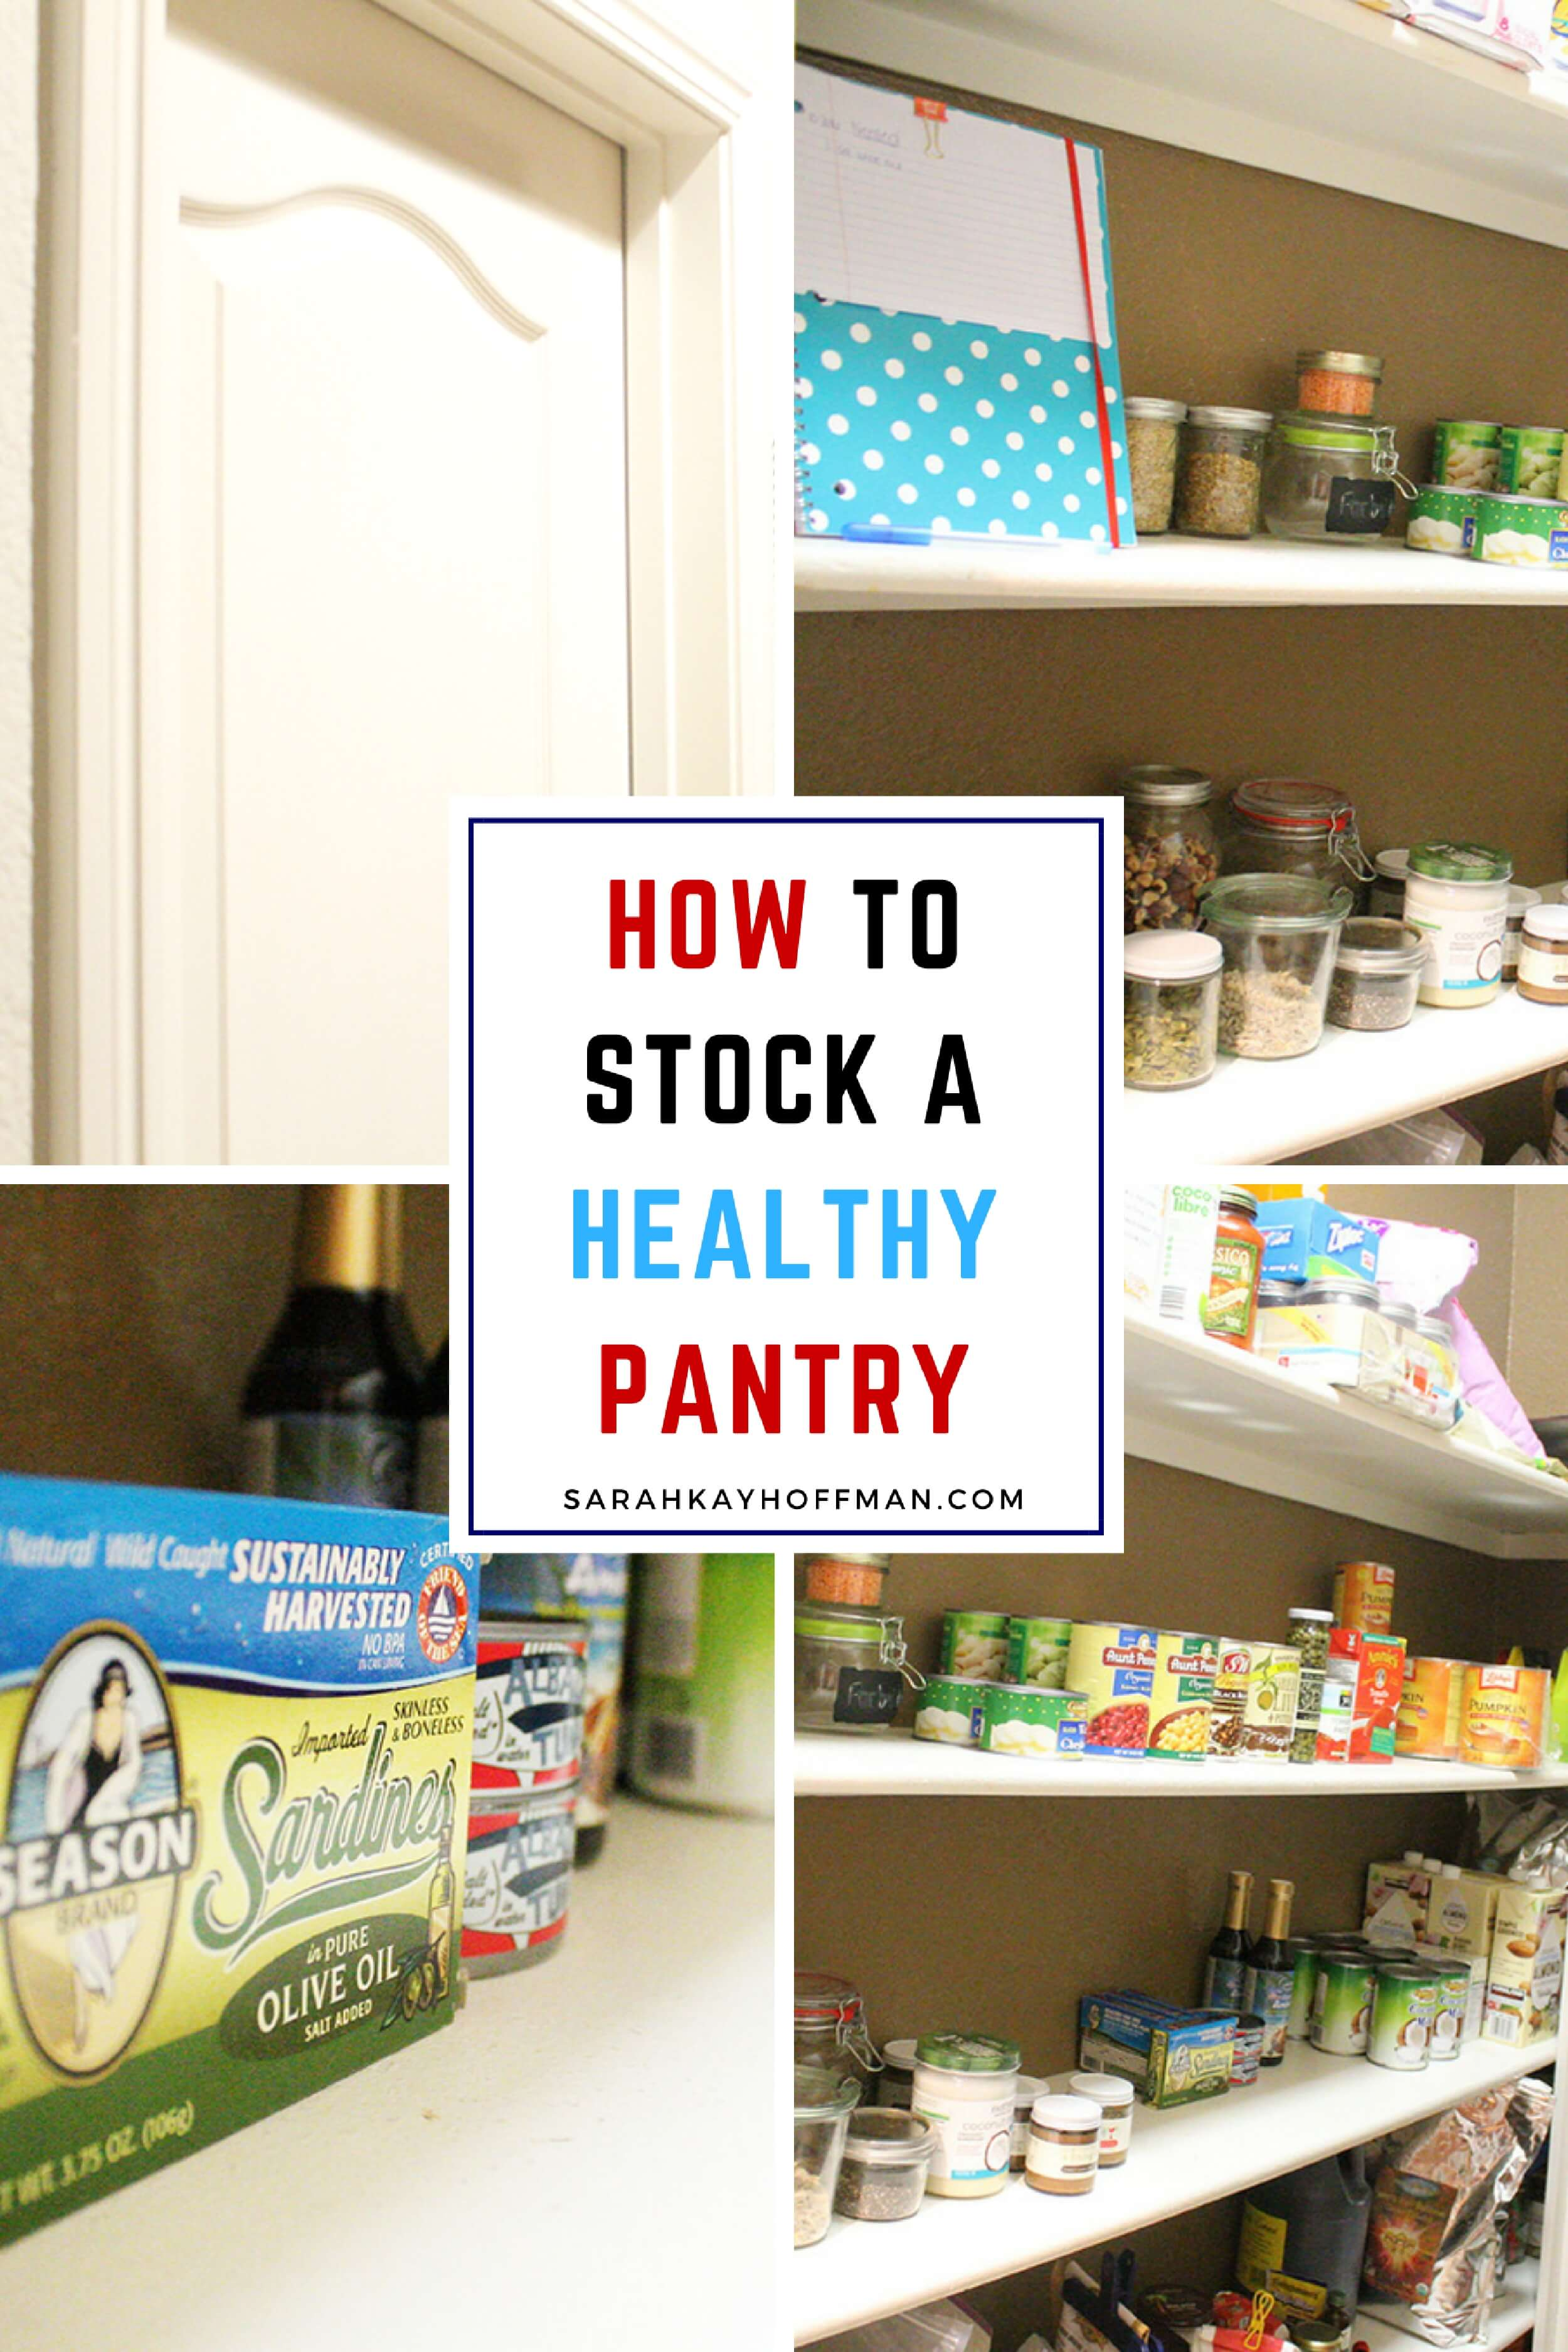 How to Stock a Healthy Pantry sarahkayhoffman.com